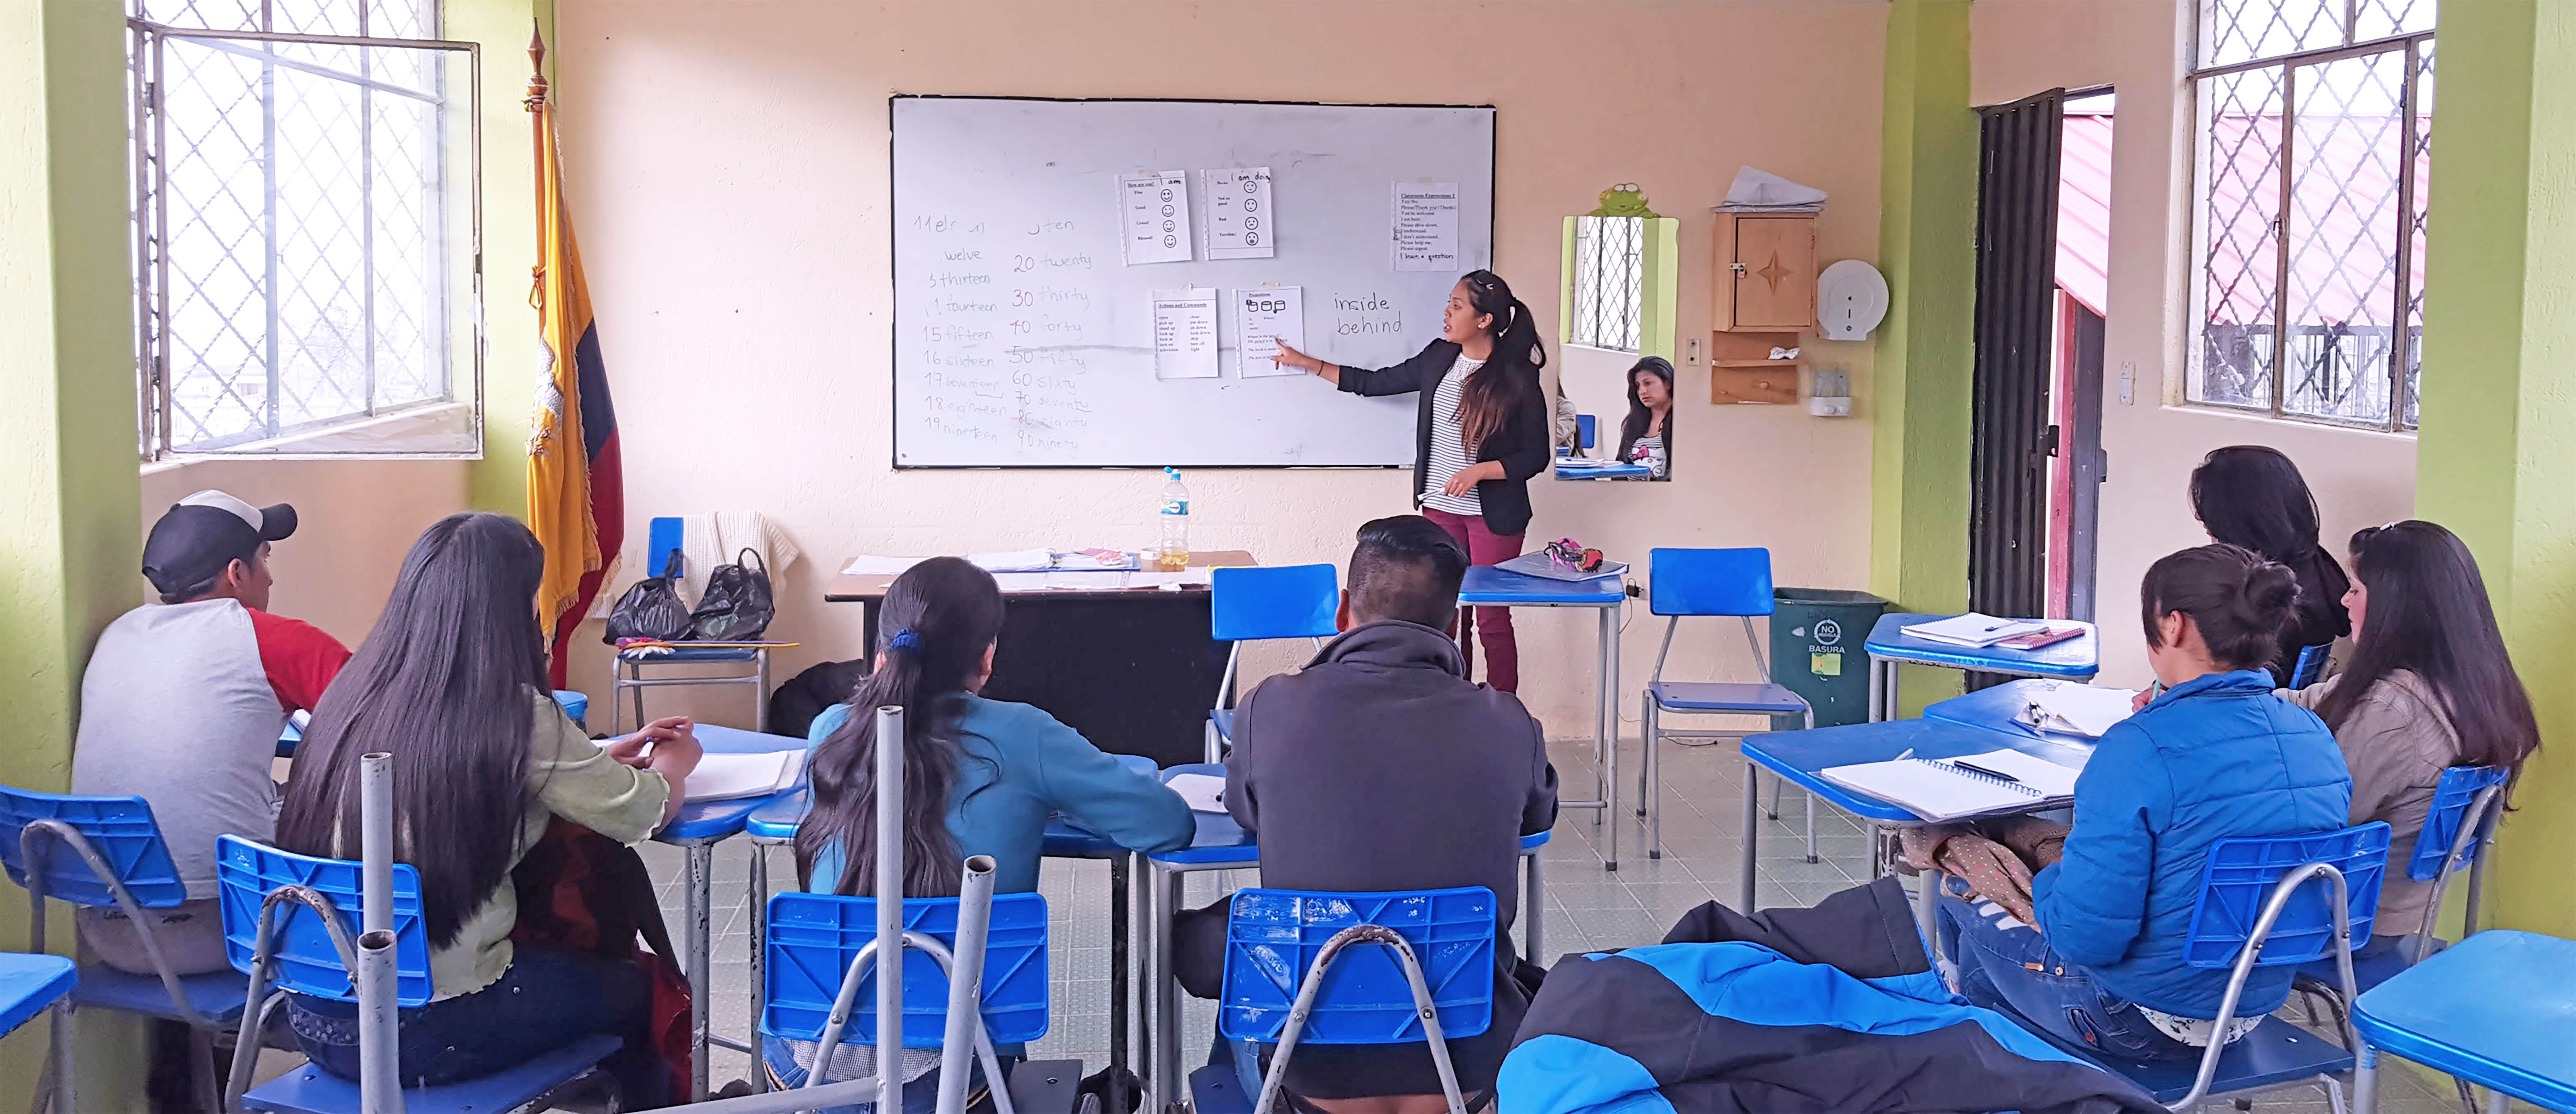 English Instruction for Community-based Tourism in Ecuador